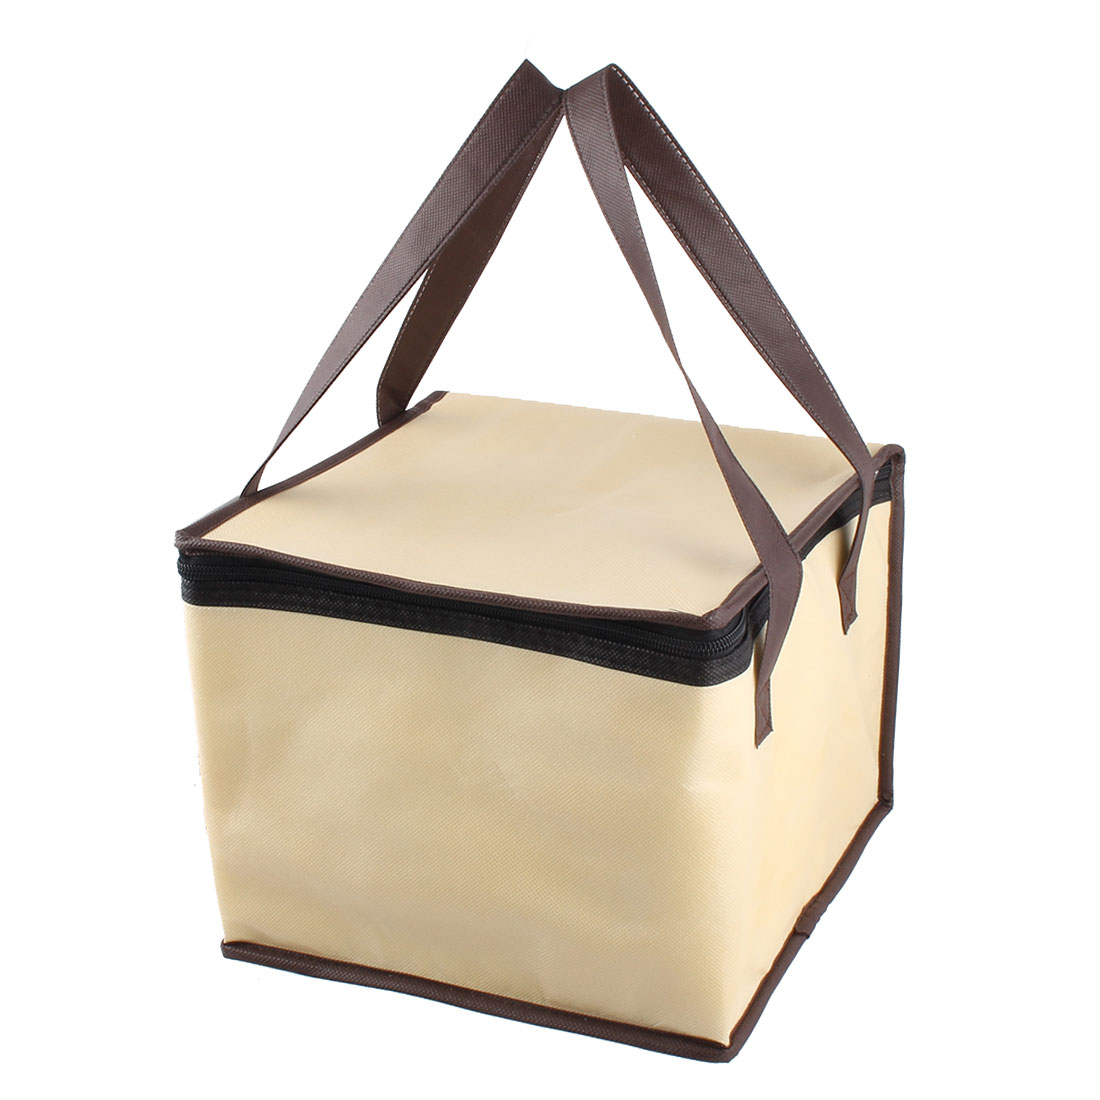 "Non-Woven Fabric 10"" Length Zipper Closure Lunch Box Cooler Tote Bag"